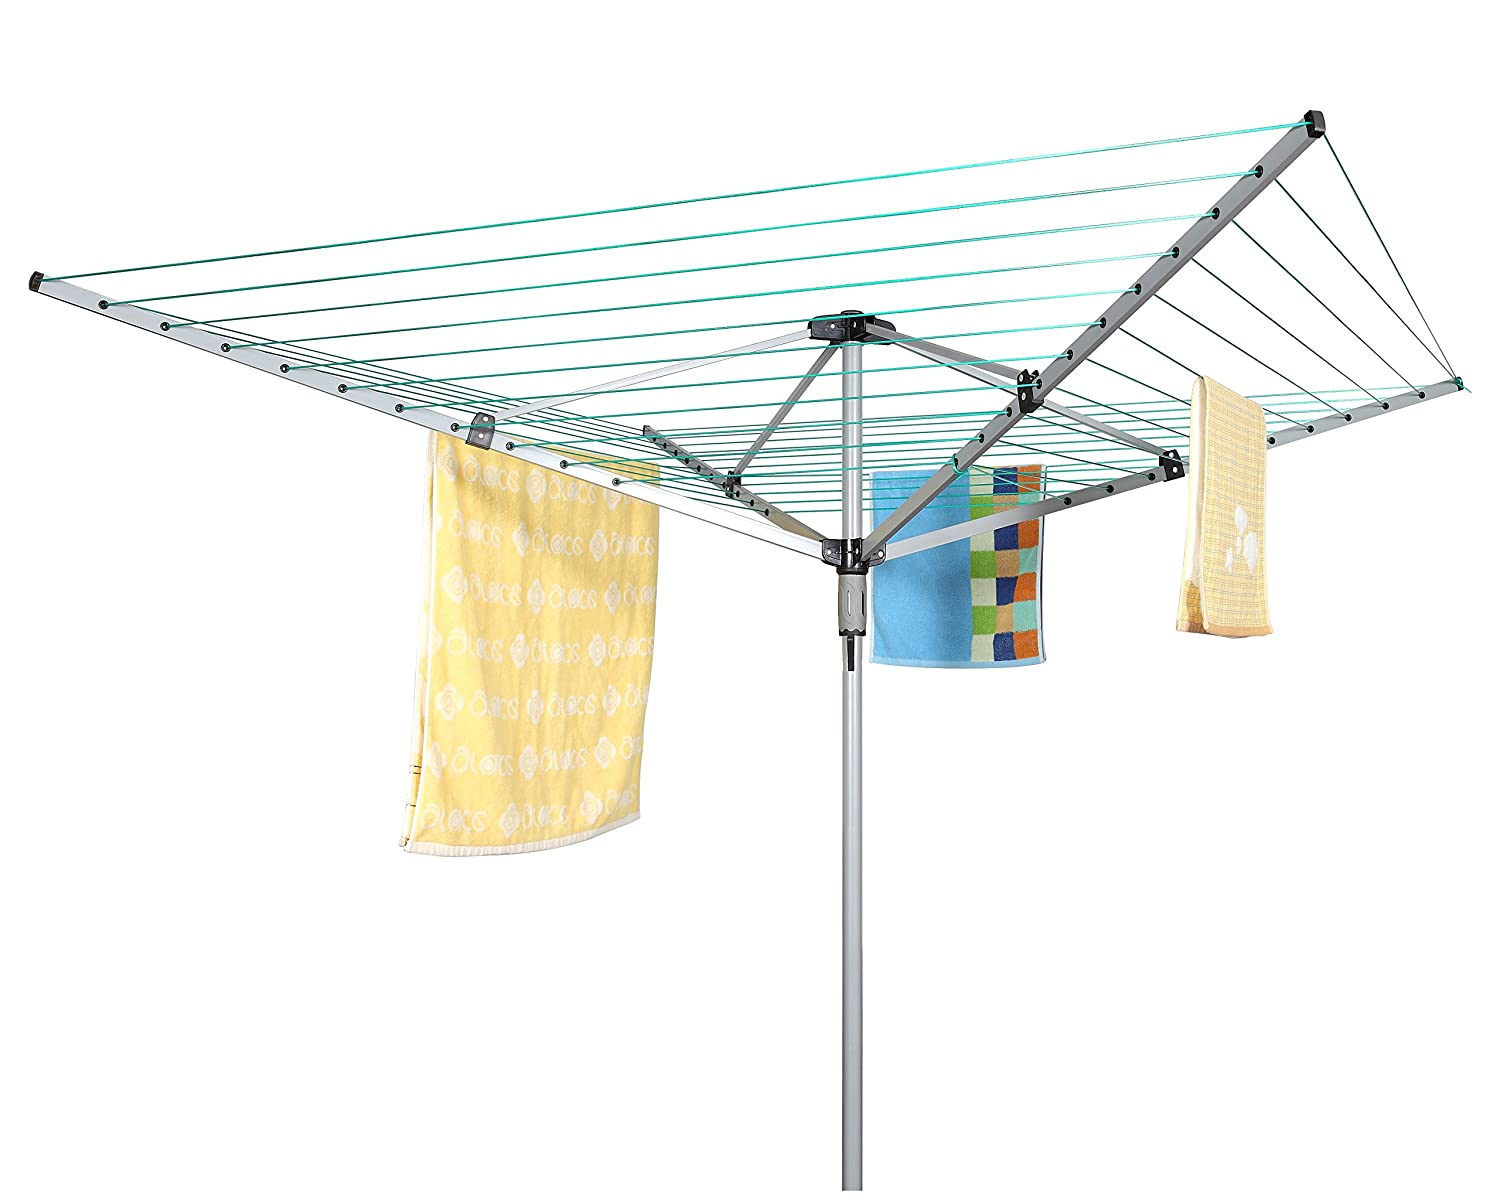 Dryer Washing Line w// Metal Ground Spike /& Water Proof Cover by FunkyBuys FunkyBuys/Â/® 50M Heavy Duty 4 Arm Outdoor Rotary Clothes Airer